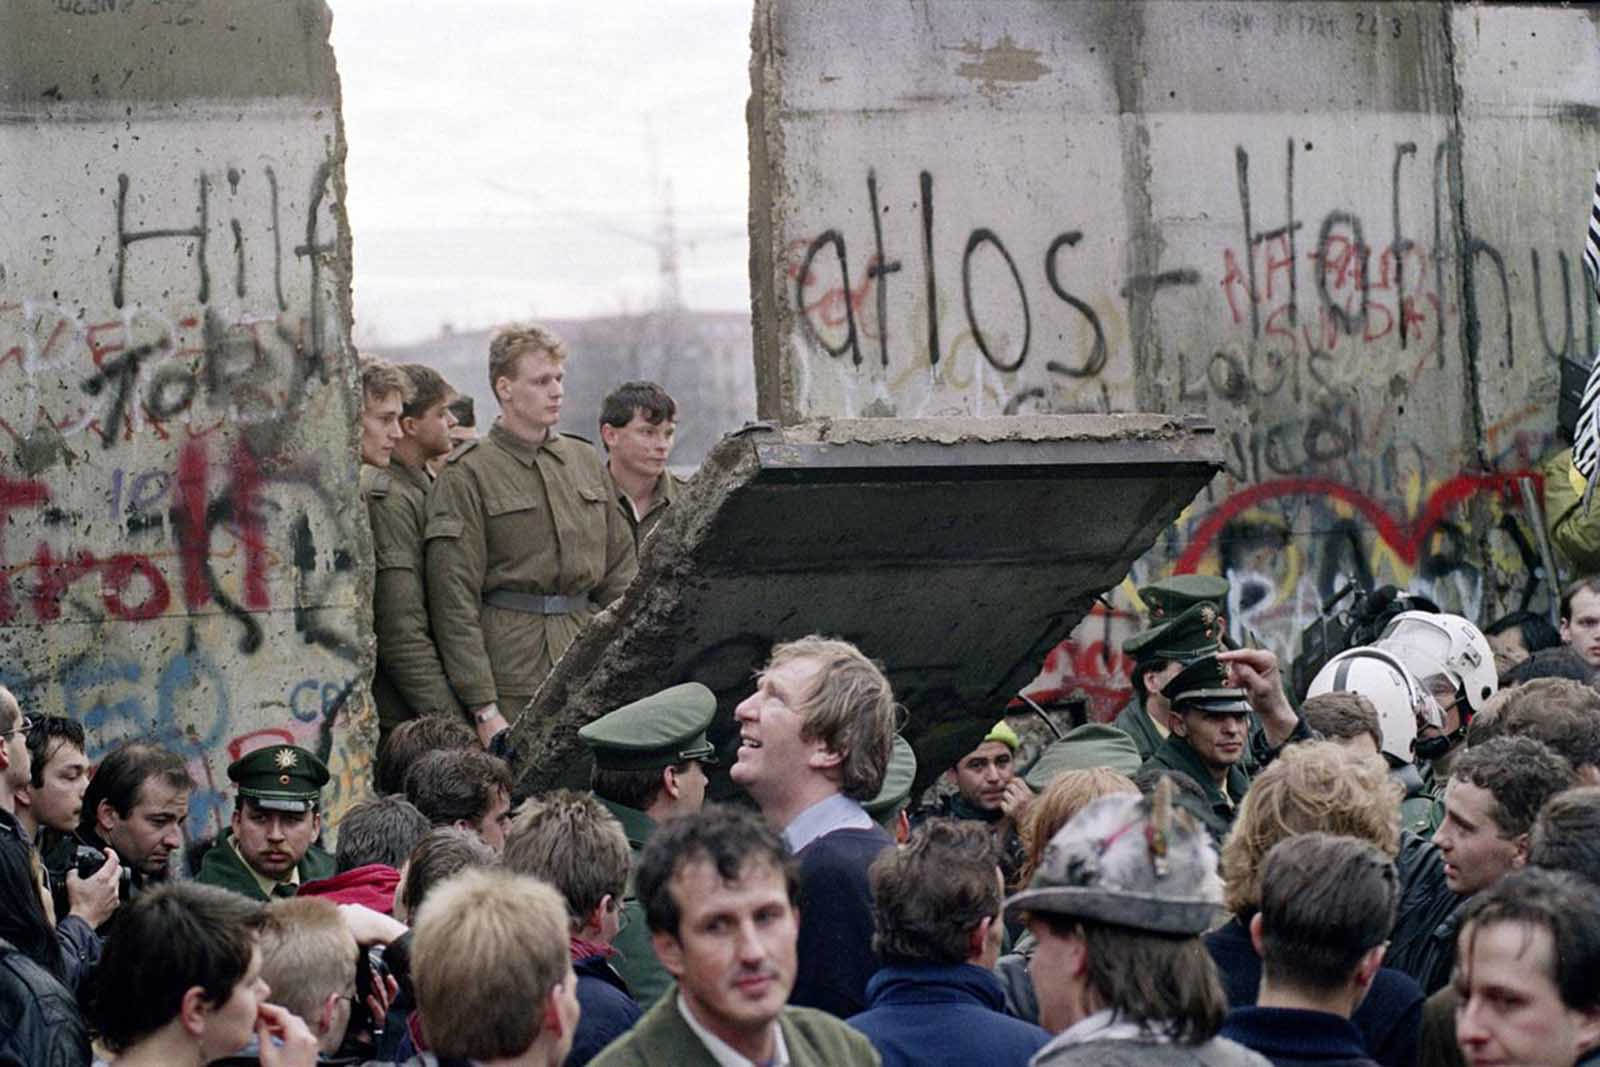 West Berliners crowd in front of the Berlin Wall early November 11, 1989 as they watch East German border guards demolishing a section of the wall in order to open a new crossing point between East and West Berlin, near the Potsdamer Square.